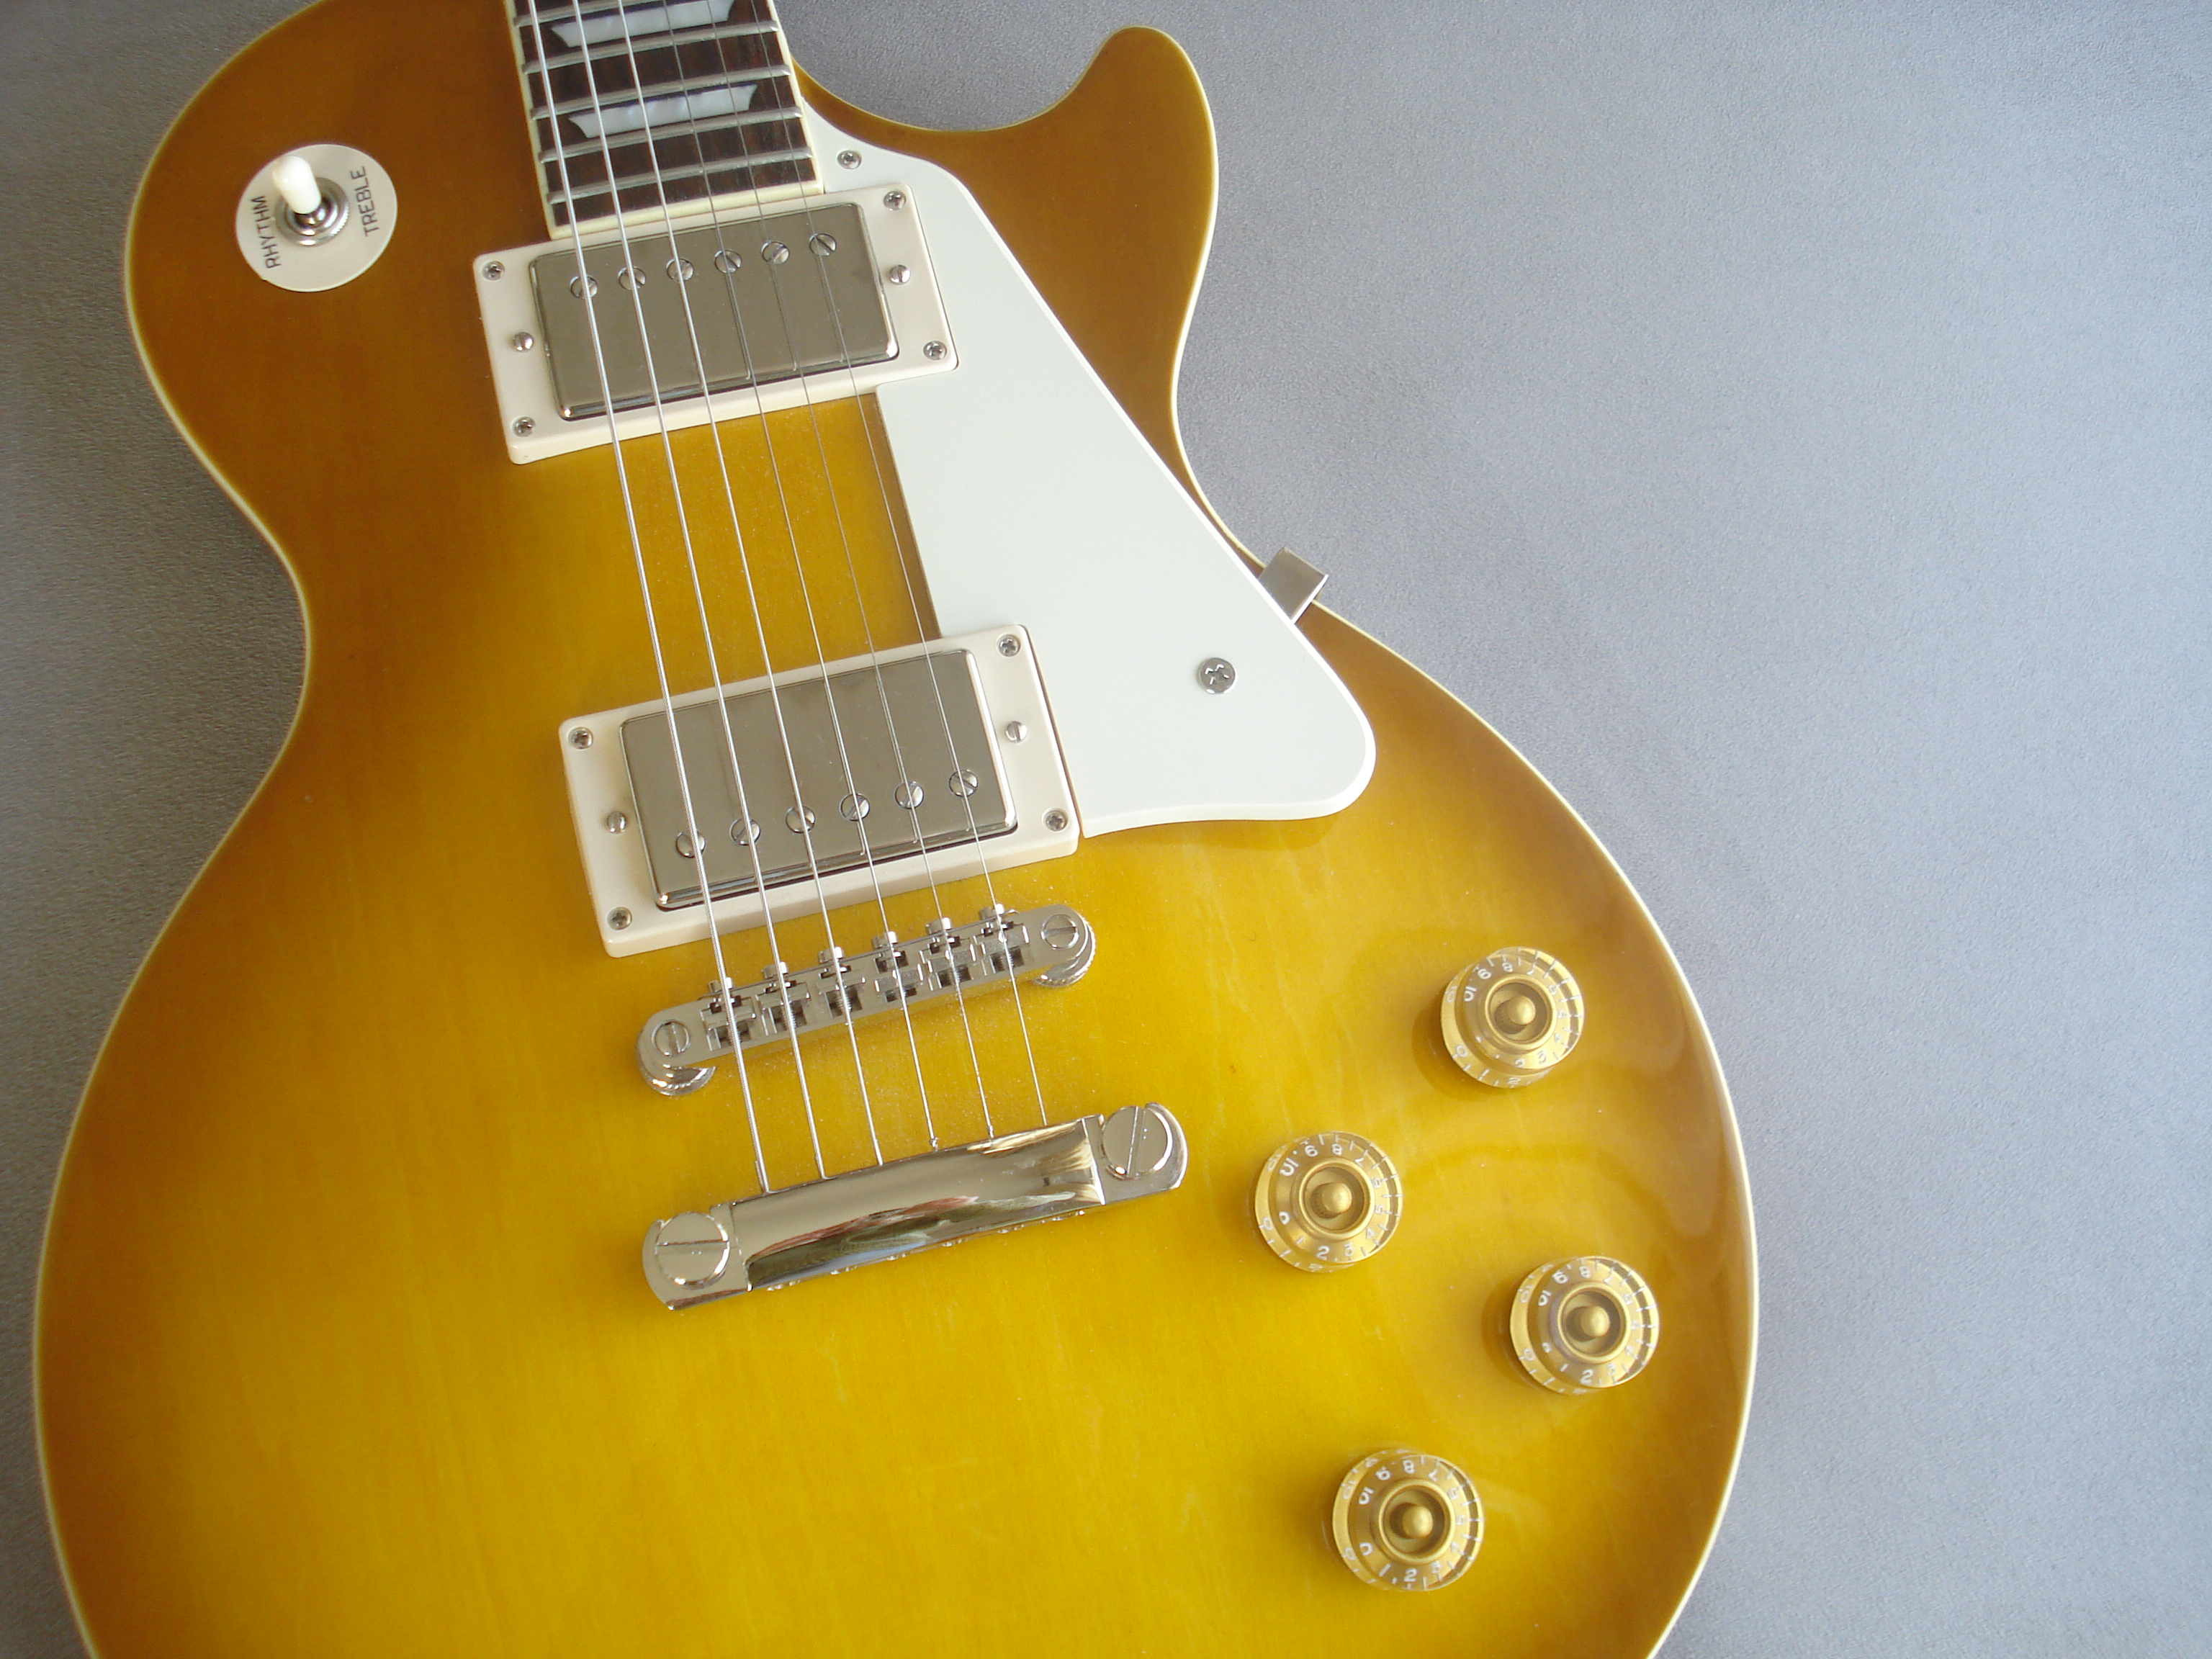 epiphone-les-paul-series-les-paul-standard-plain-top-honey-burst-352152.jpg